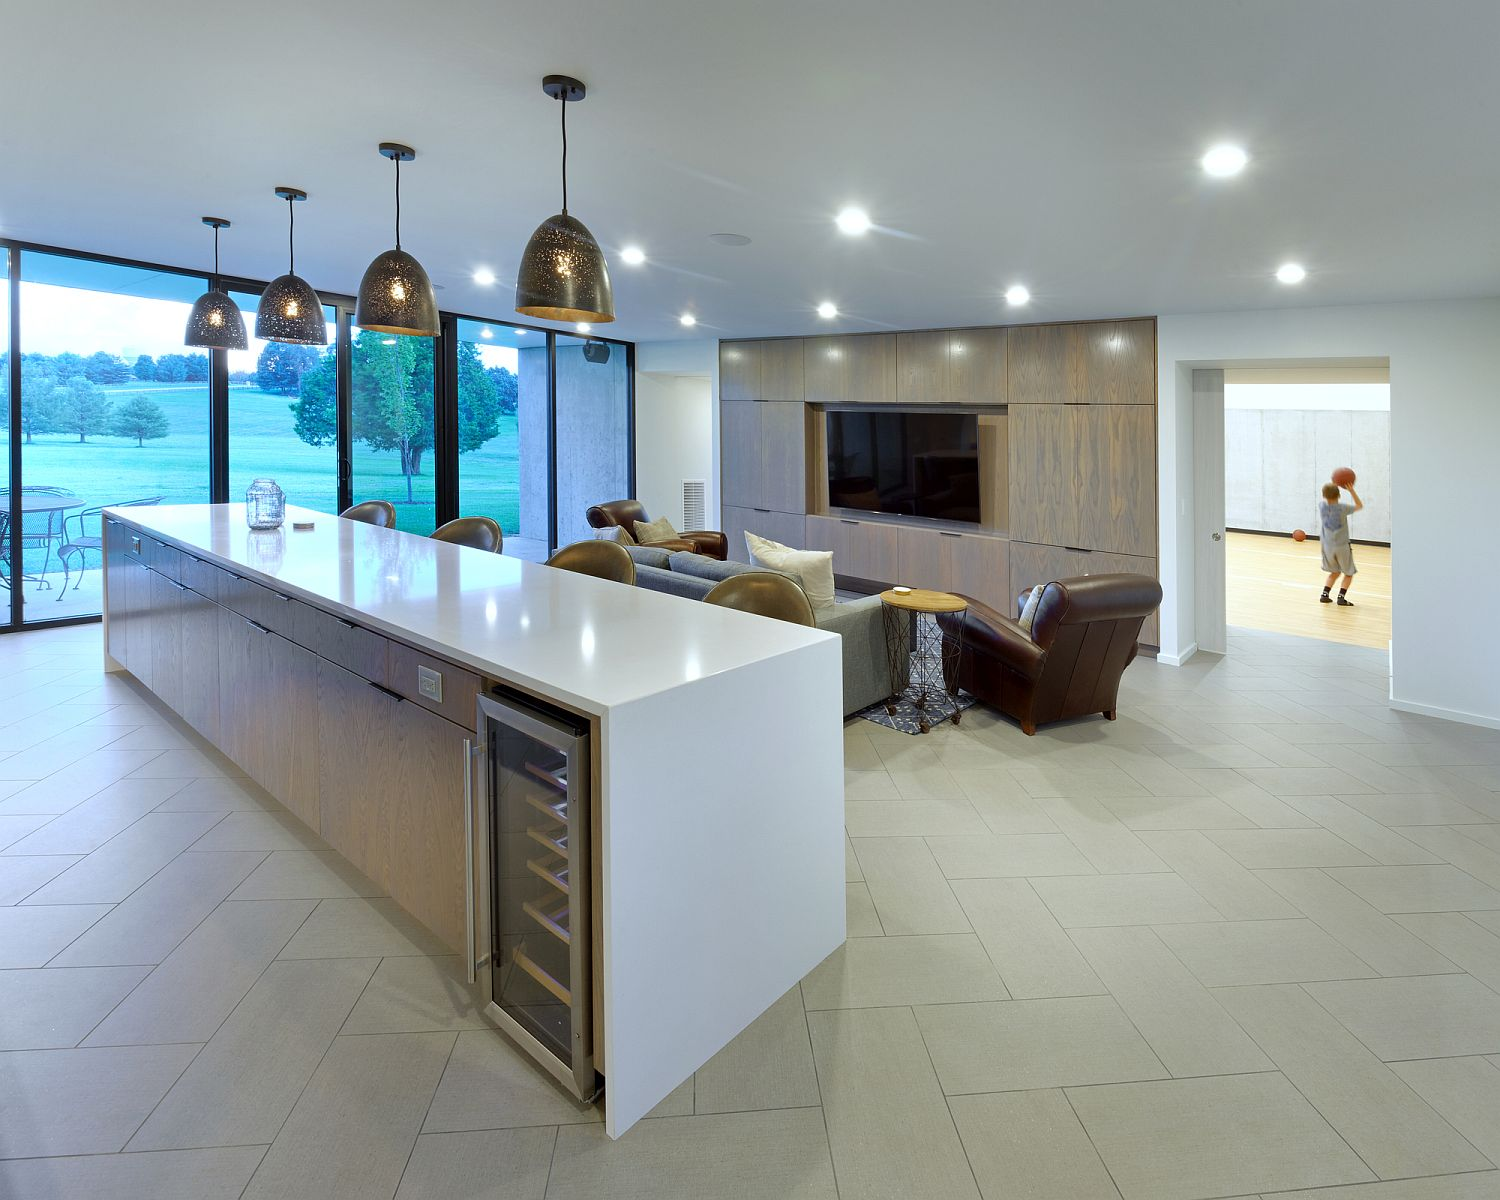 Contemporary-kitchen-on-the-suburban-home-in-white-with-a-spacious-island